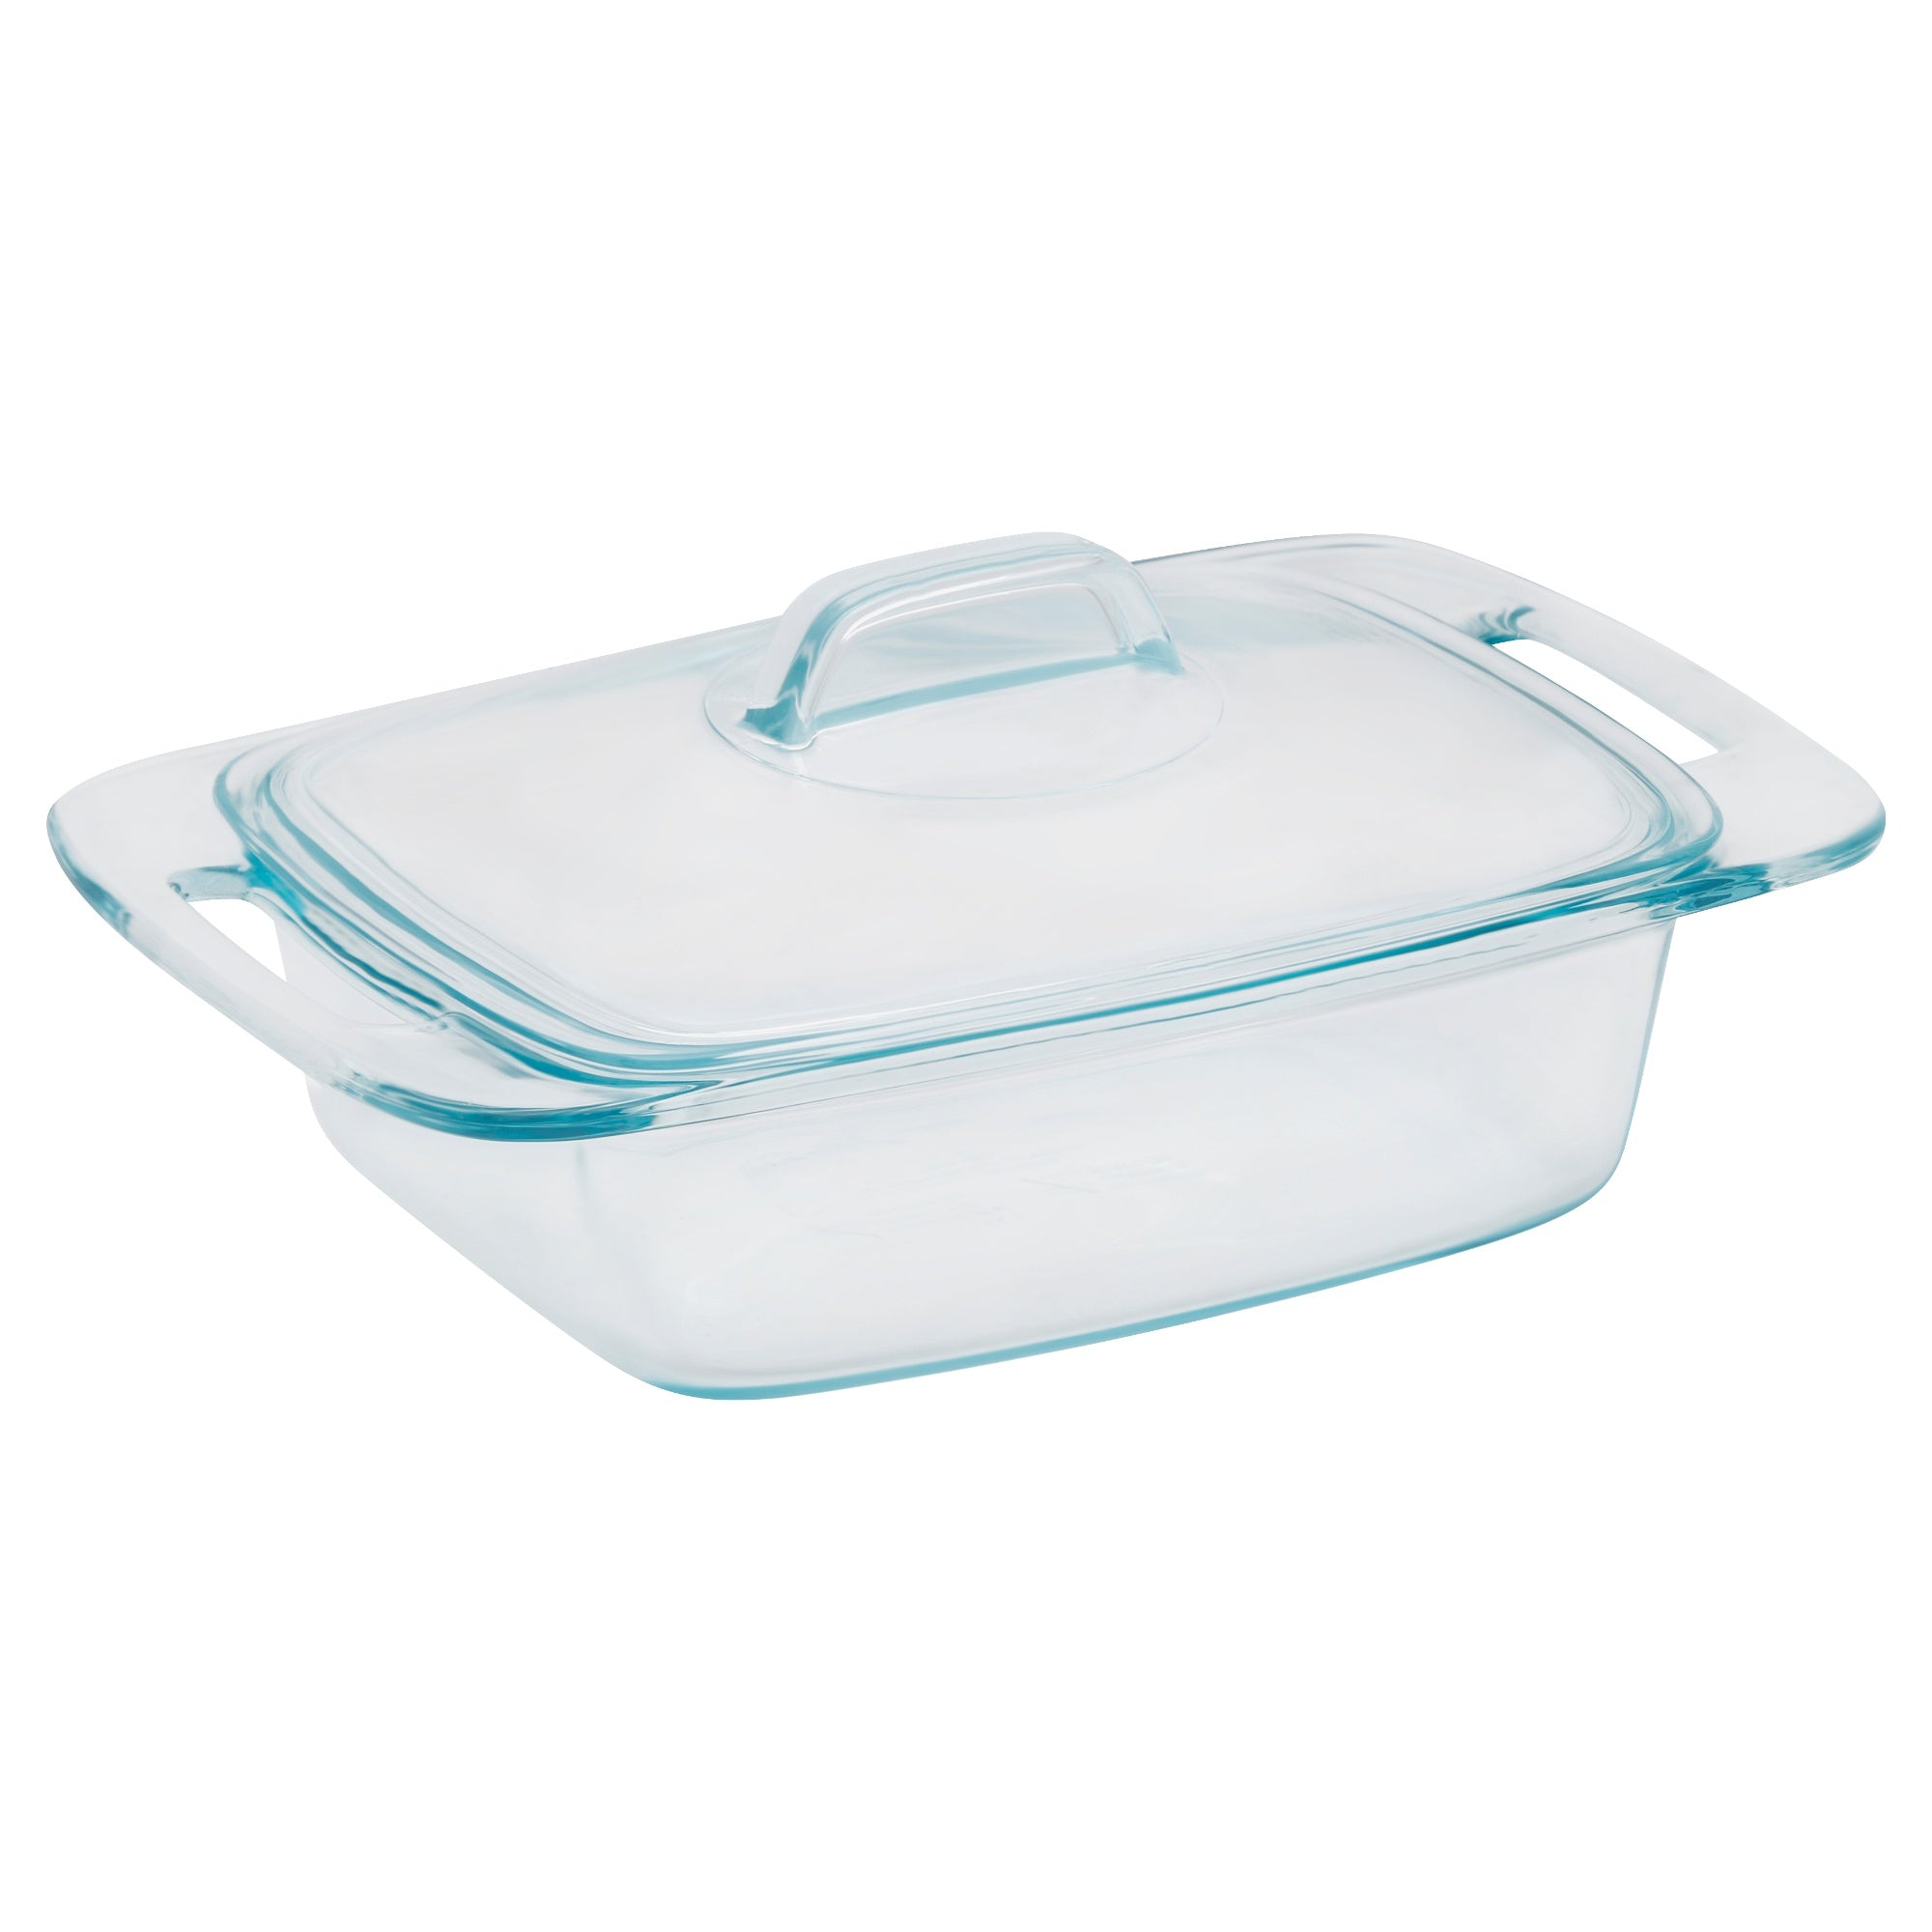 Pyrex GBW Easy Grab 1.9L Glass Covered Casserole-1085801